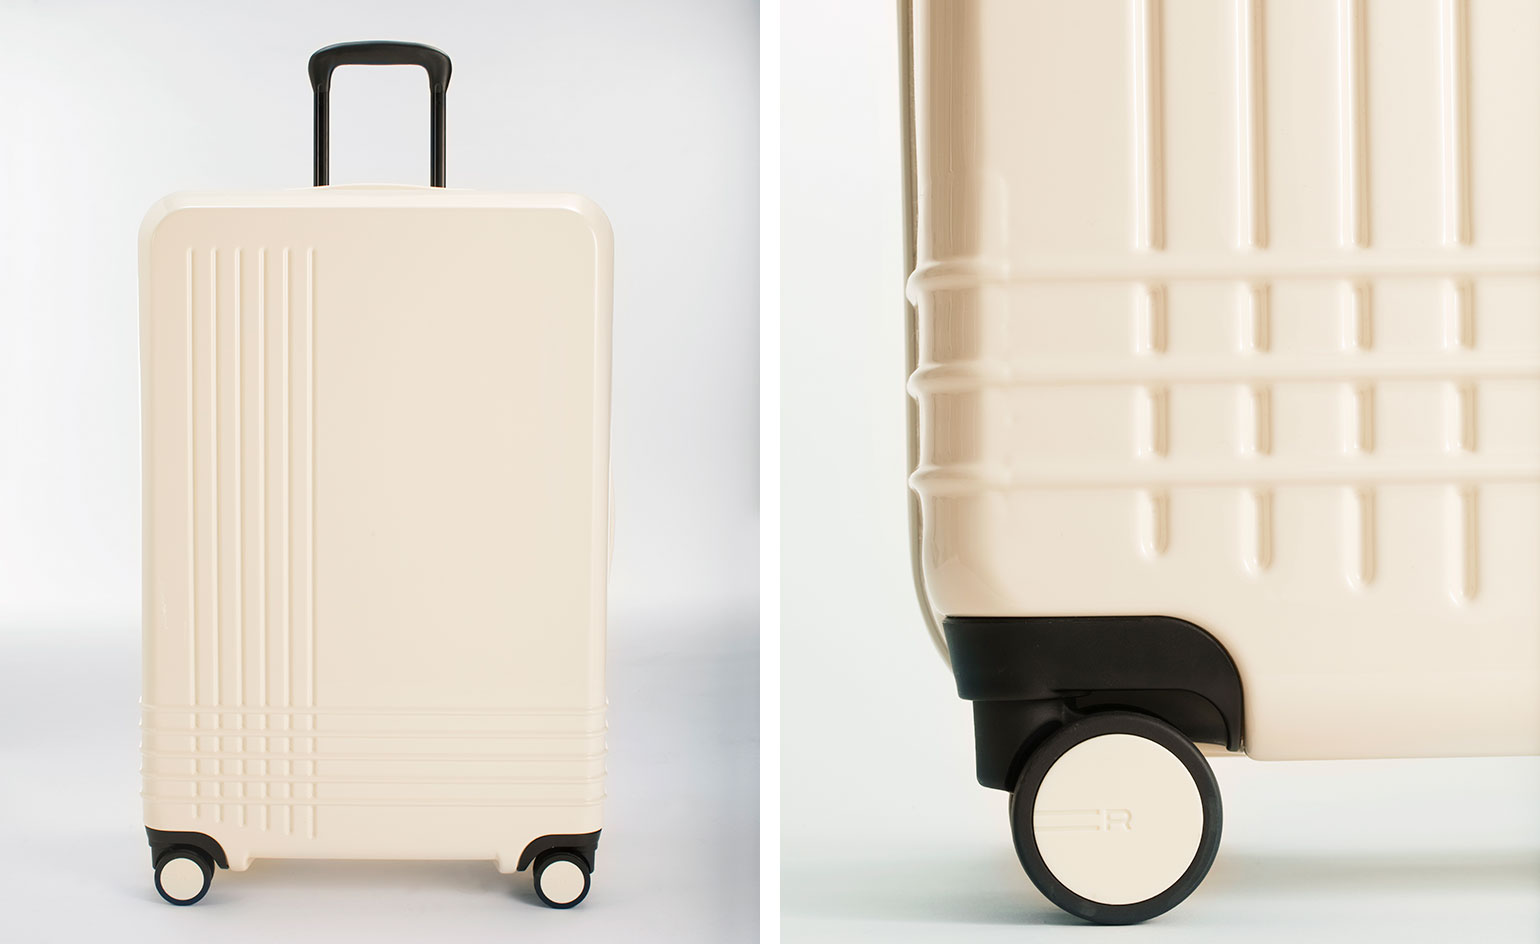 ROAM Tahitian Sand suitcase luggage